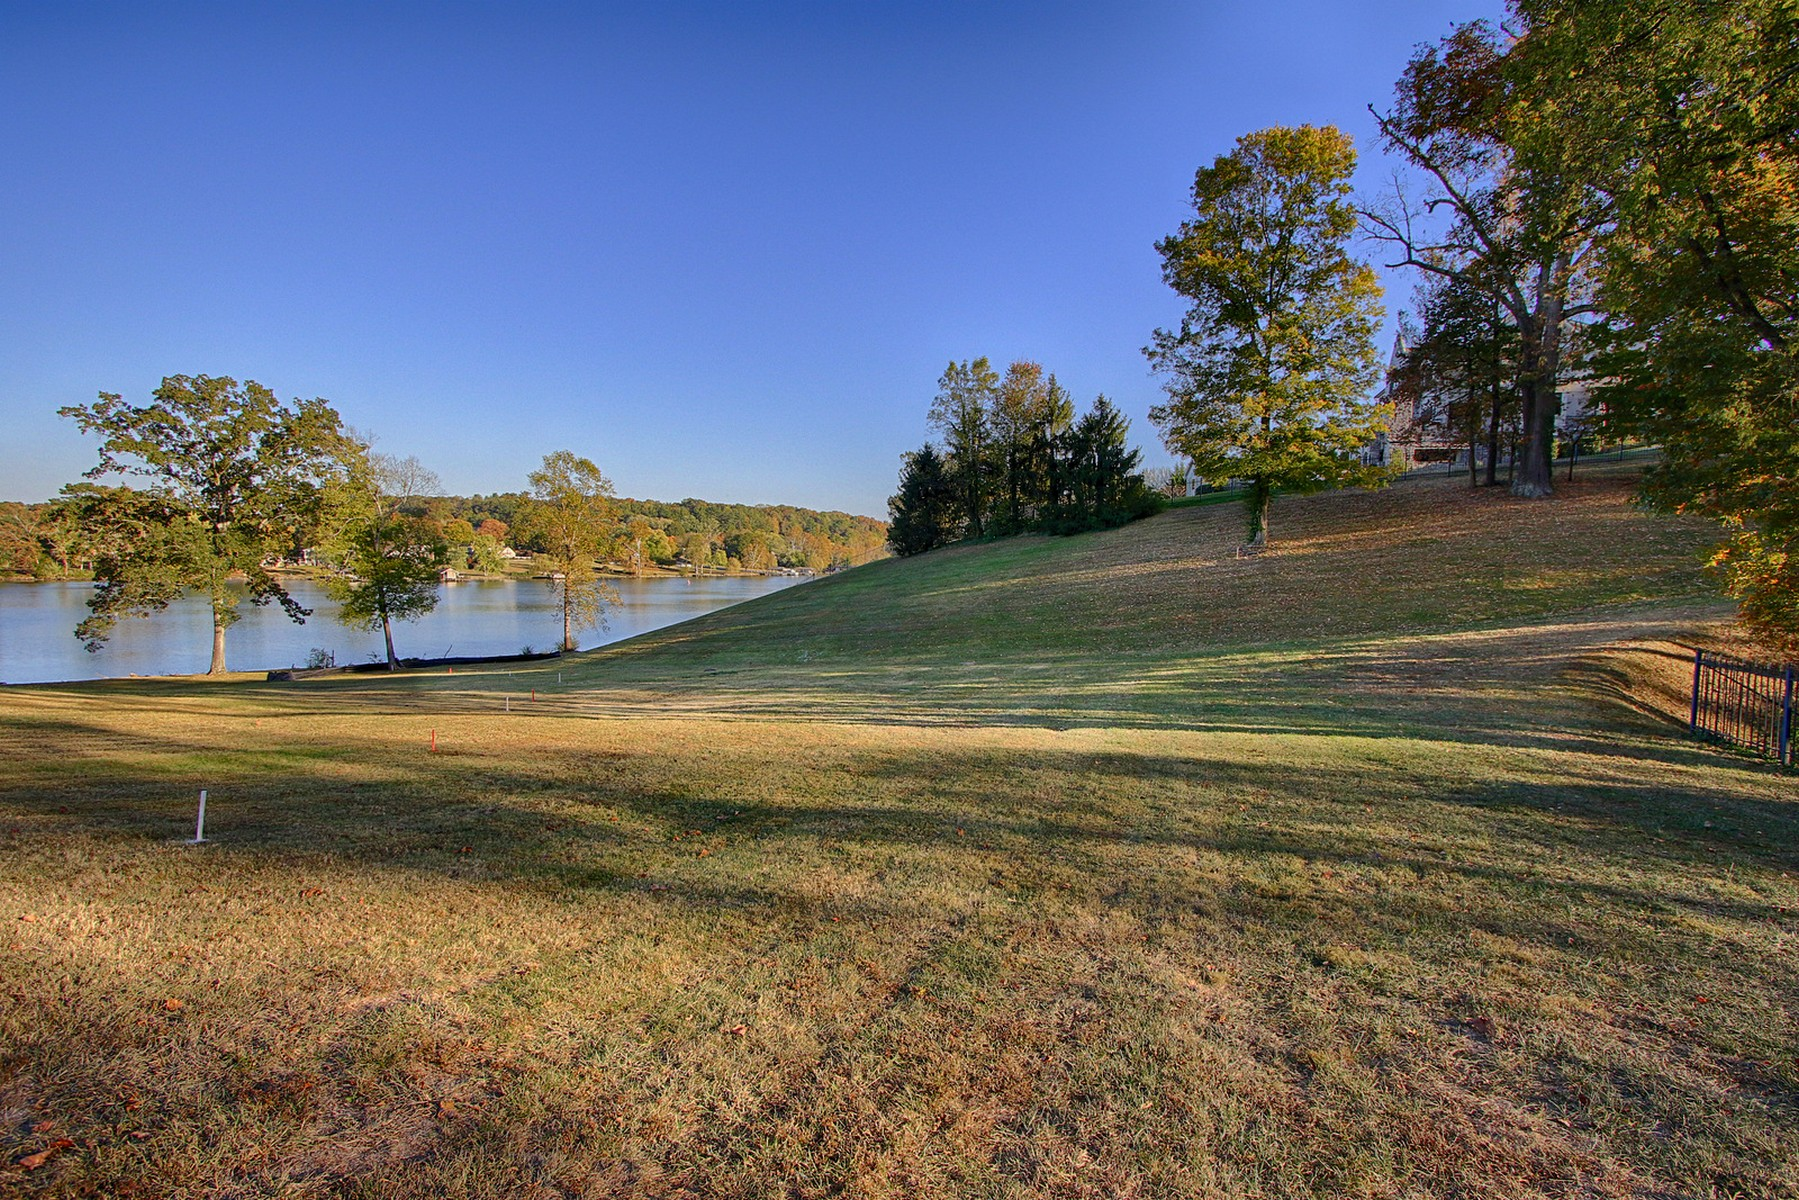 Land for Sale at Villa Estates At Lyons View Pike 5656 Lyons View Pike Lot #1 Knoxville, Tennessee, 37919 United States